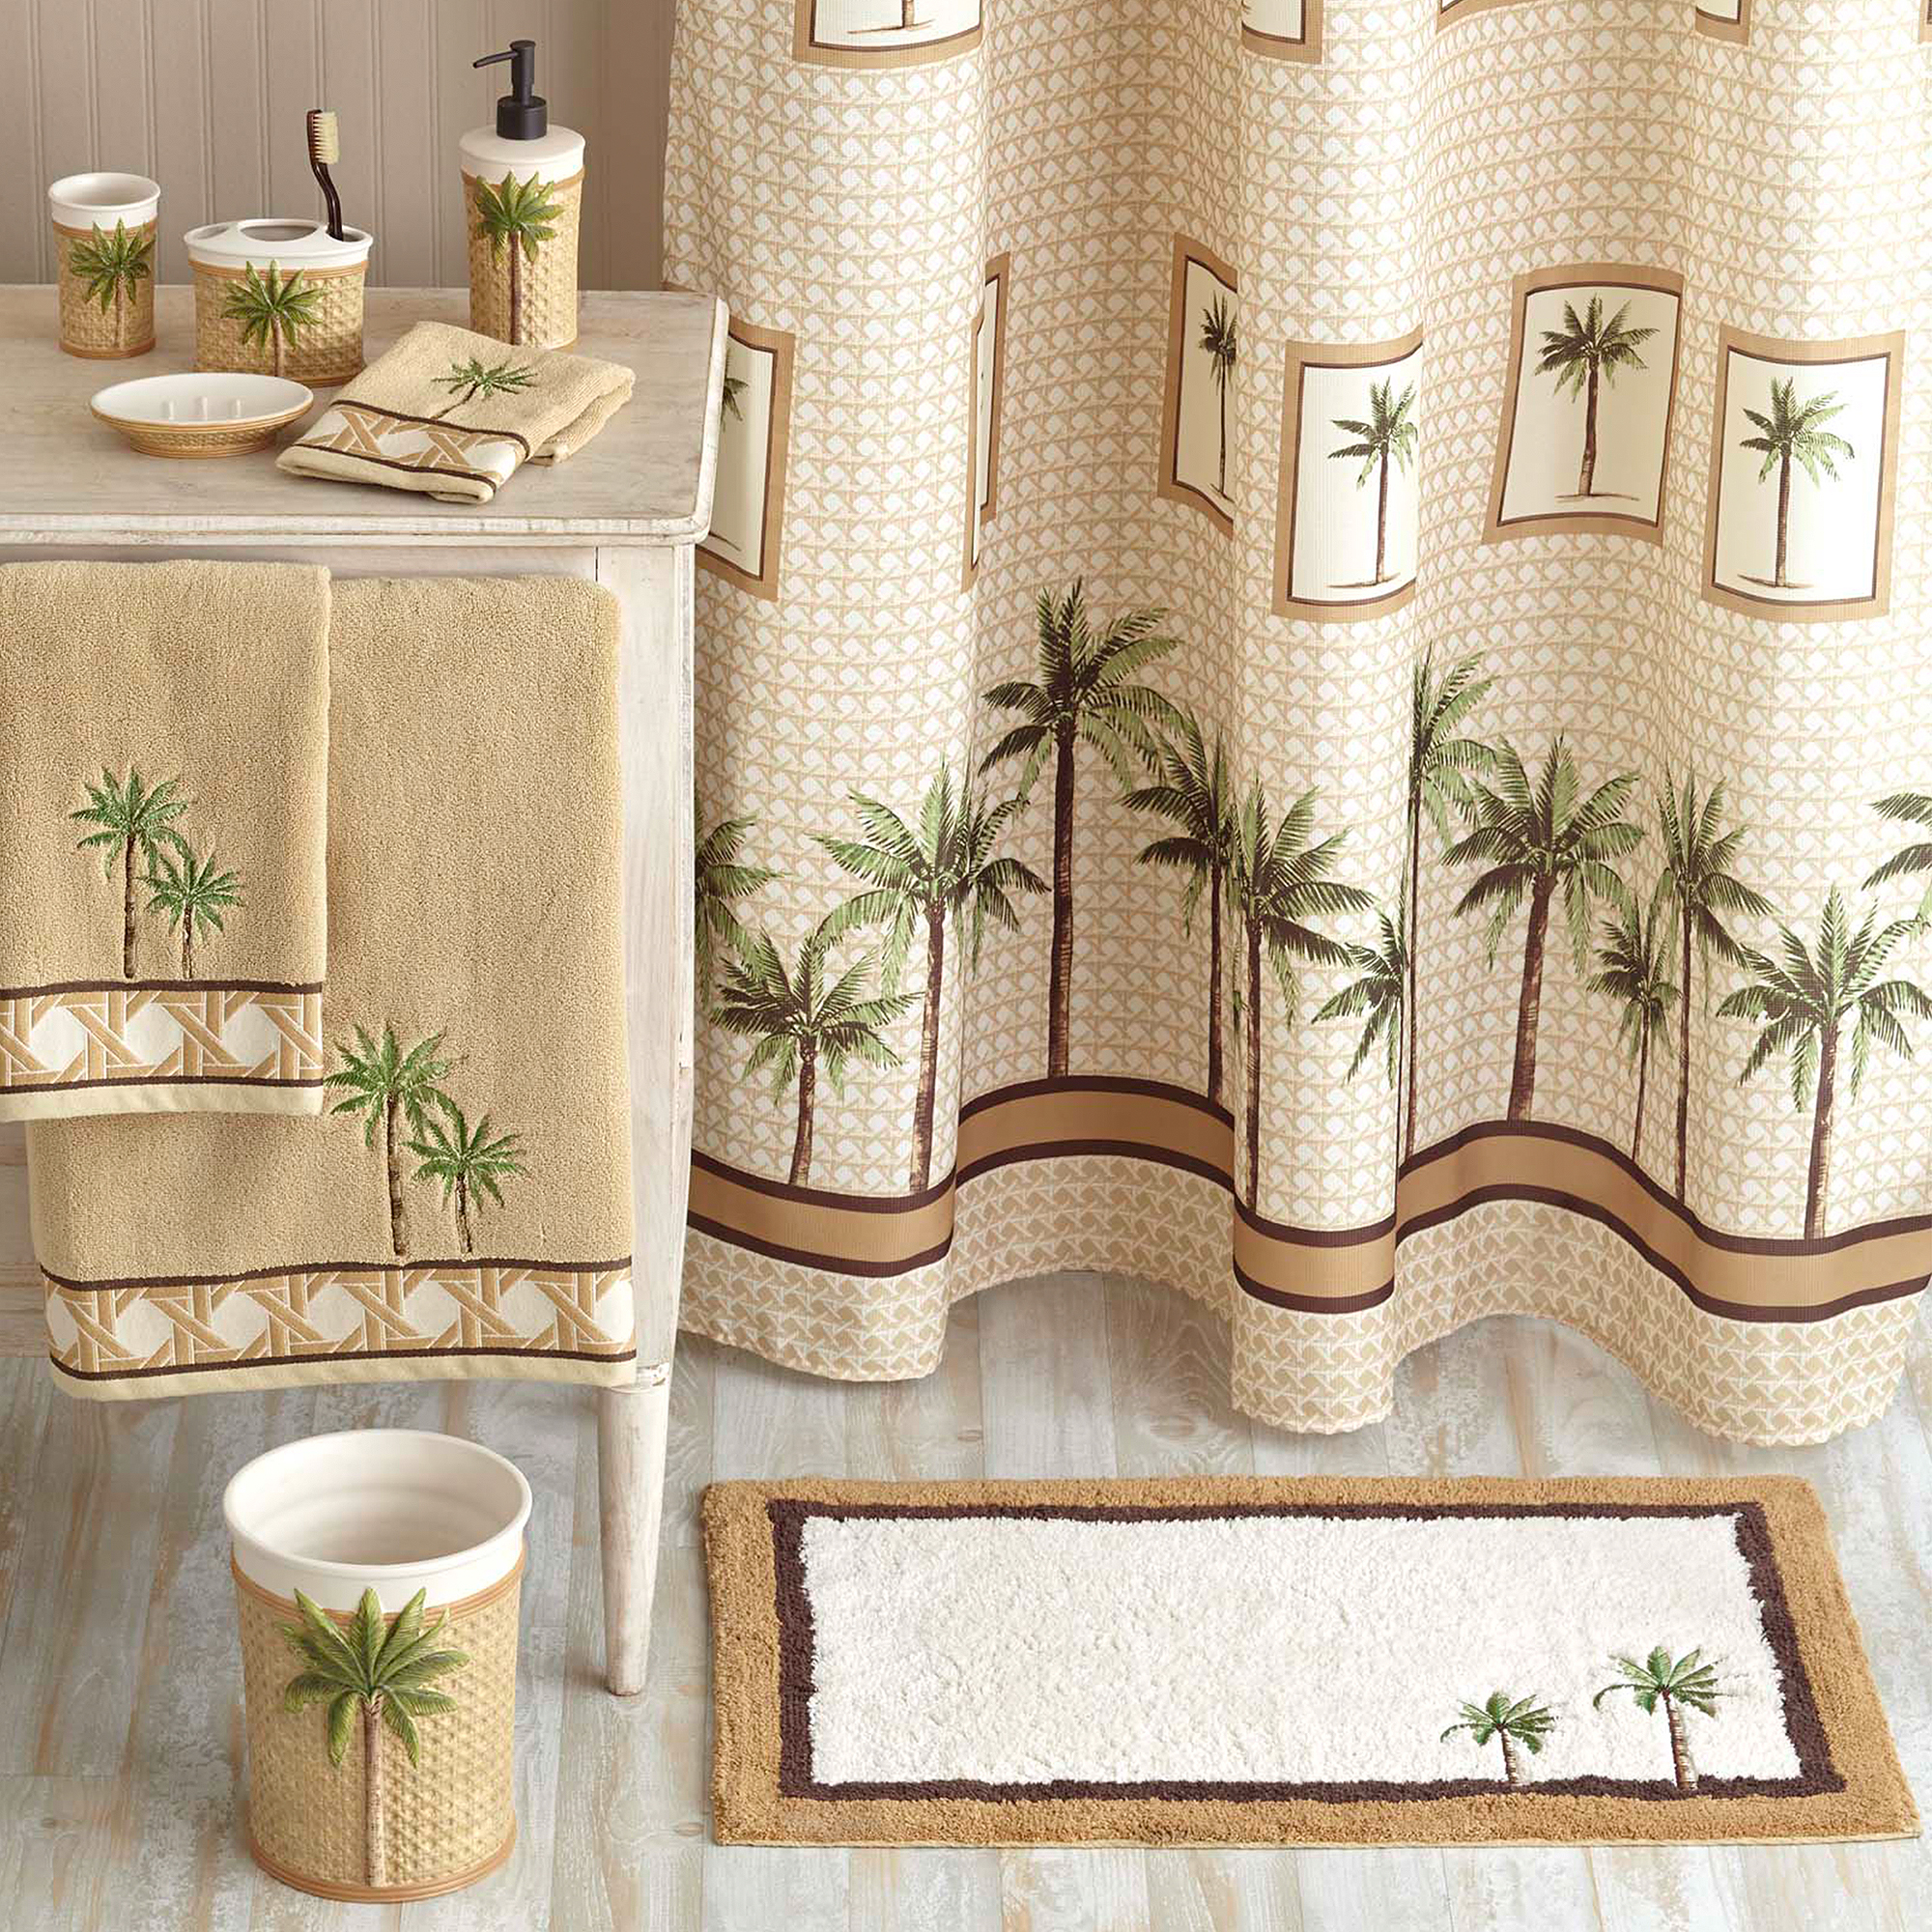 Better Homes And Gardens Palm Decorative Bath Collection Shower